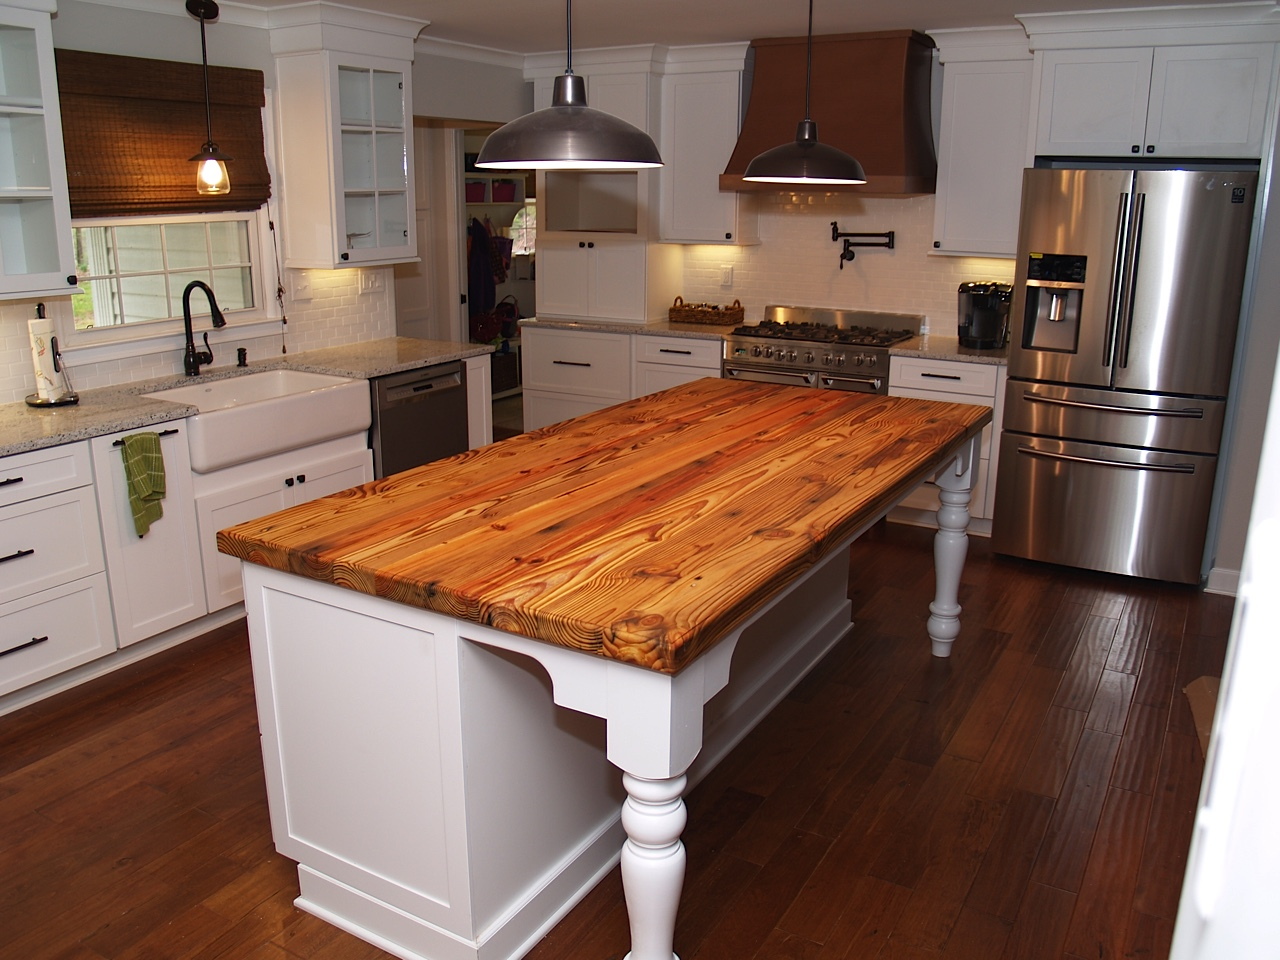 Reclaimed wood countertop heart pine 3 8 bead edge with butchers wax food grade finish installed in waxhaw north carolina